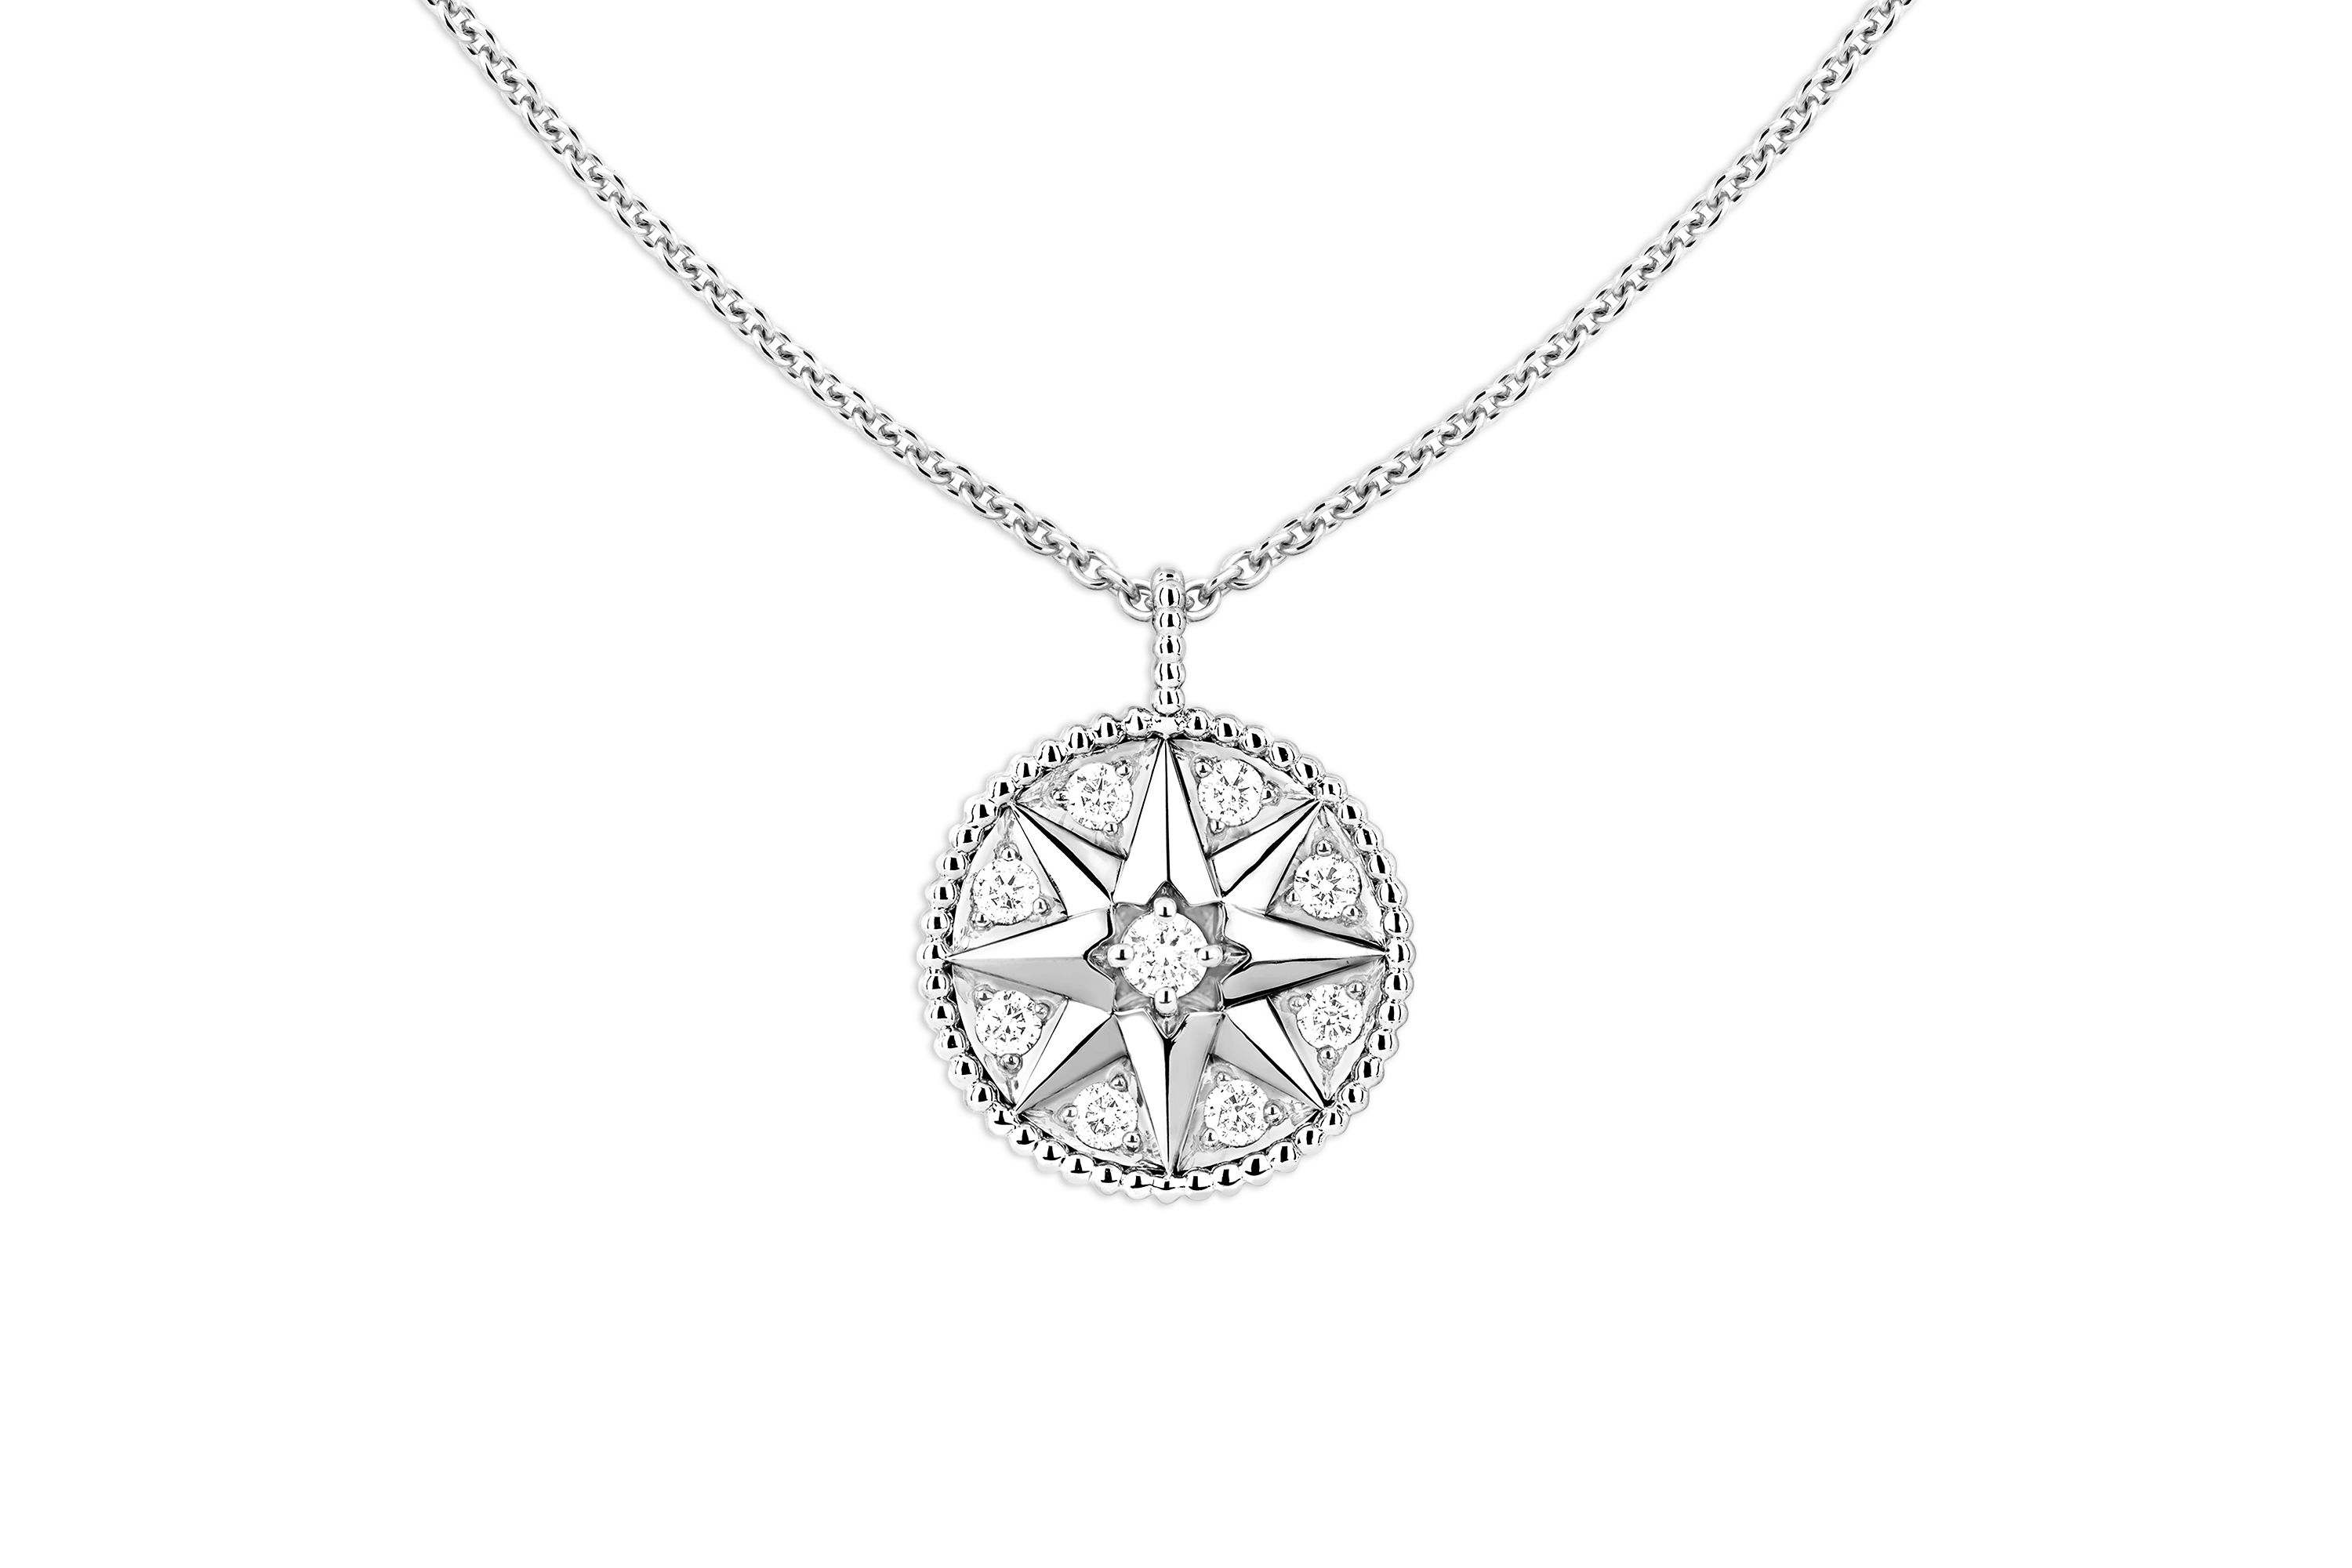 boutique diamond medalion pendant eye image chic necklace products evil earthy medallion